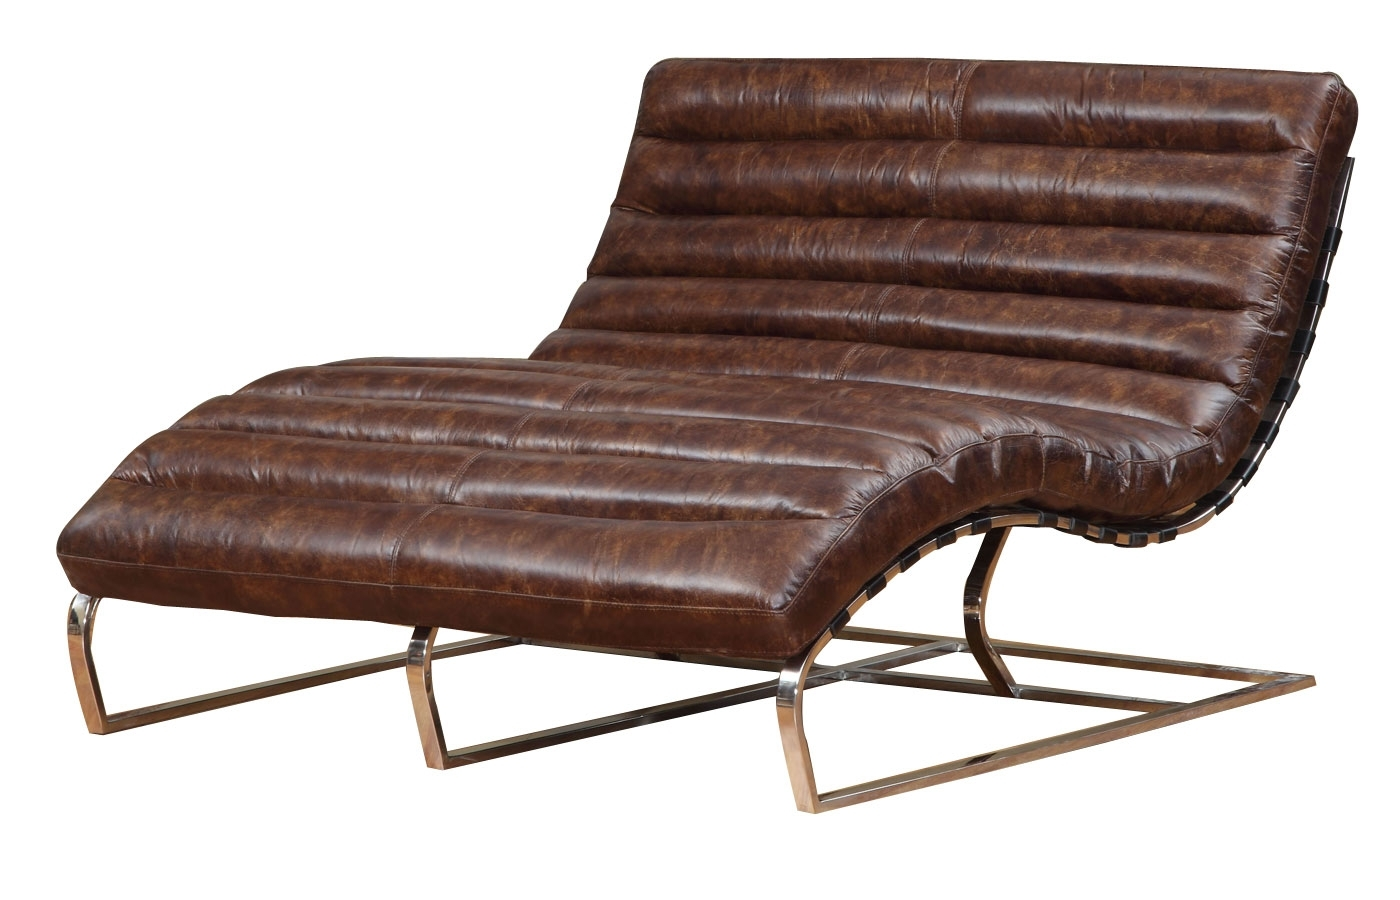 Preferred Double Chaise Lounge Sofas Regarding Furniture (View 13 of 15)